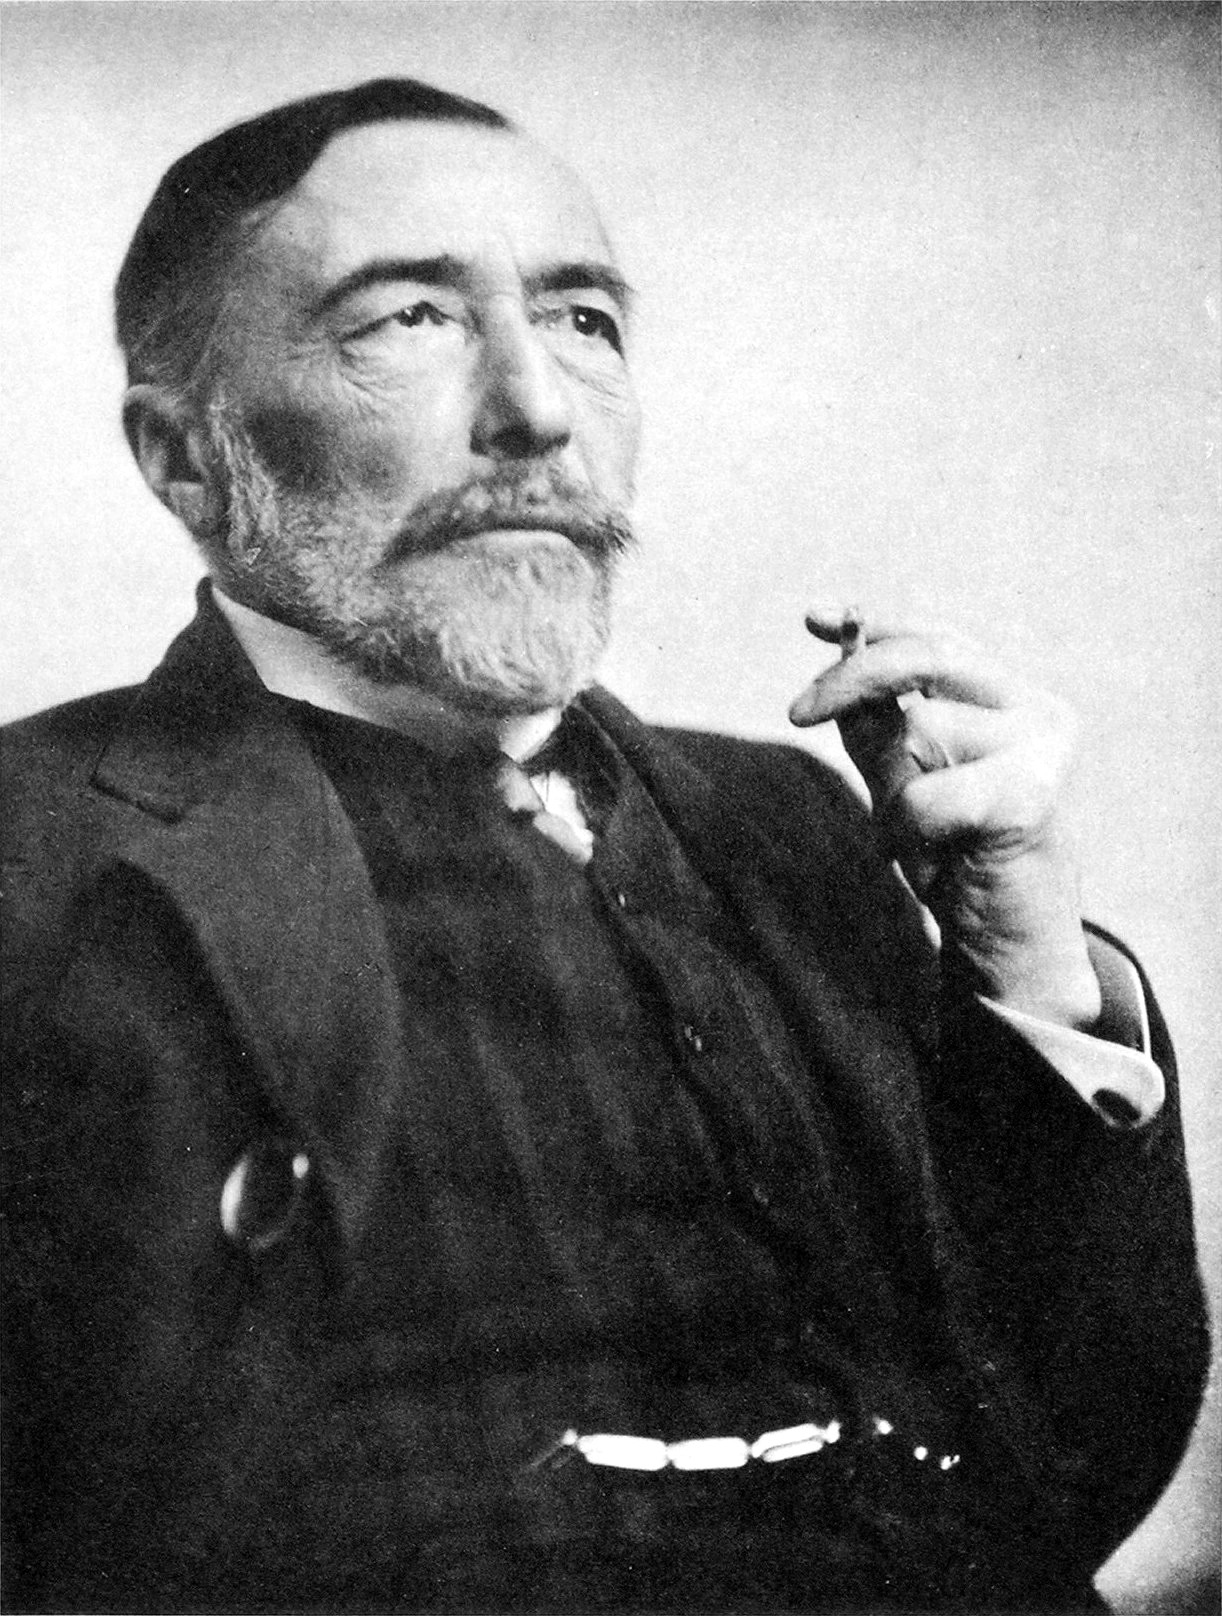 File:Joseph Conrad 1916.jpg - Wikipedia, the free encyclopedia